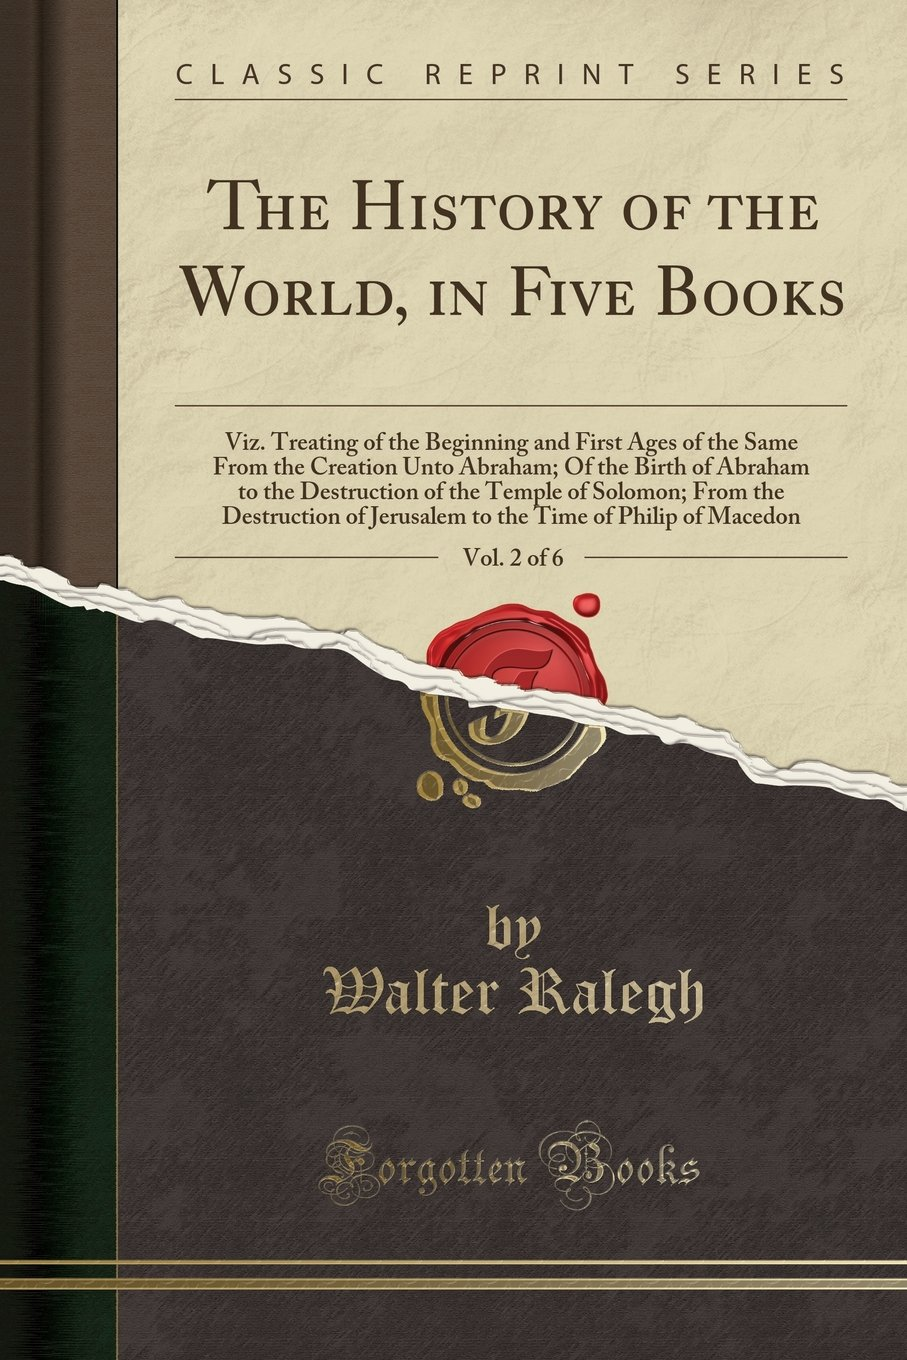 The History of the World, in Five Books, Vol. 2 of 6: Viz. Treating of the Beginning and First Ages of the Same From the Creation Unto Abraham; Of the ... From the Destruction of Jerusalem to the T PDF